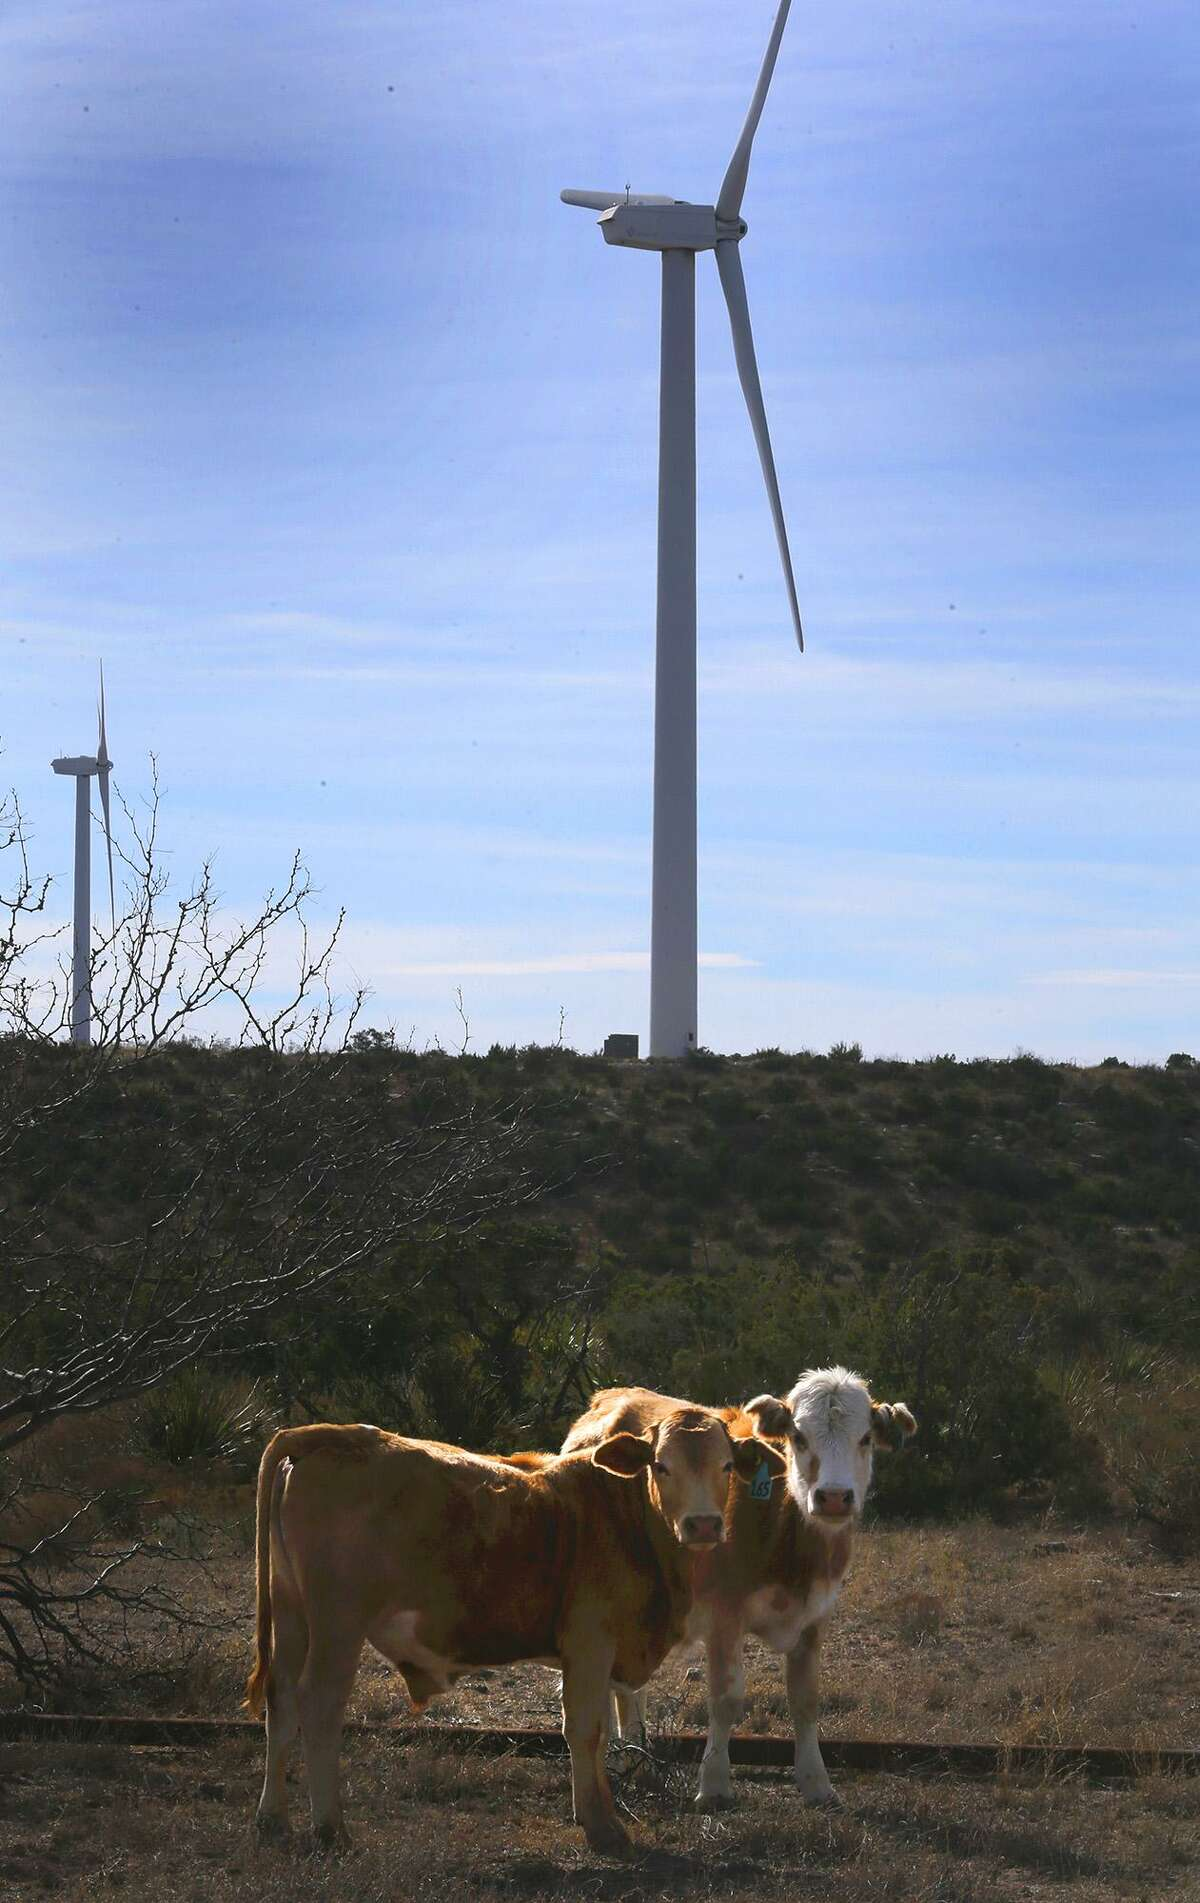 Cattle roam on a mesa near Iraan, Texas on the site of the Desert Sky Wind Farm. According to website Desert Sky Wind Farm® is a 160.5-megawatt (160,500-kilowatt) wind power generation facility located near the far West Texas town of Iraan, in Pecos County. The site includes 107 turbines, each rated at 1.5 megawatts (1,500 kilowatts) spread over a 15-square-mile area on Indian Mesa.